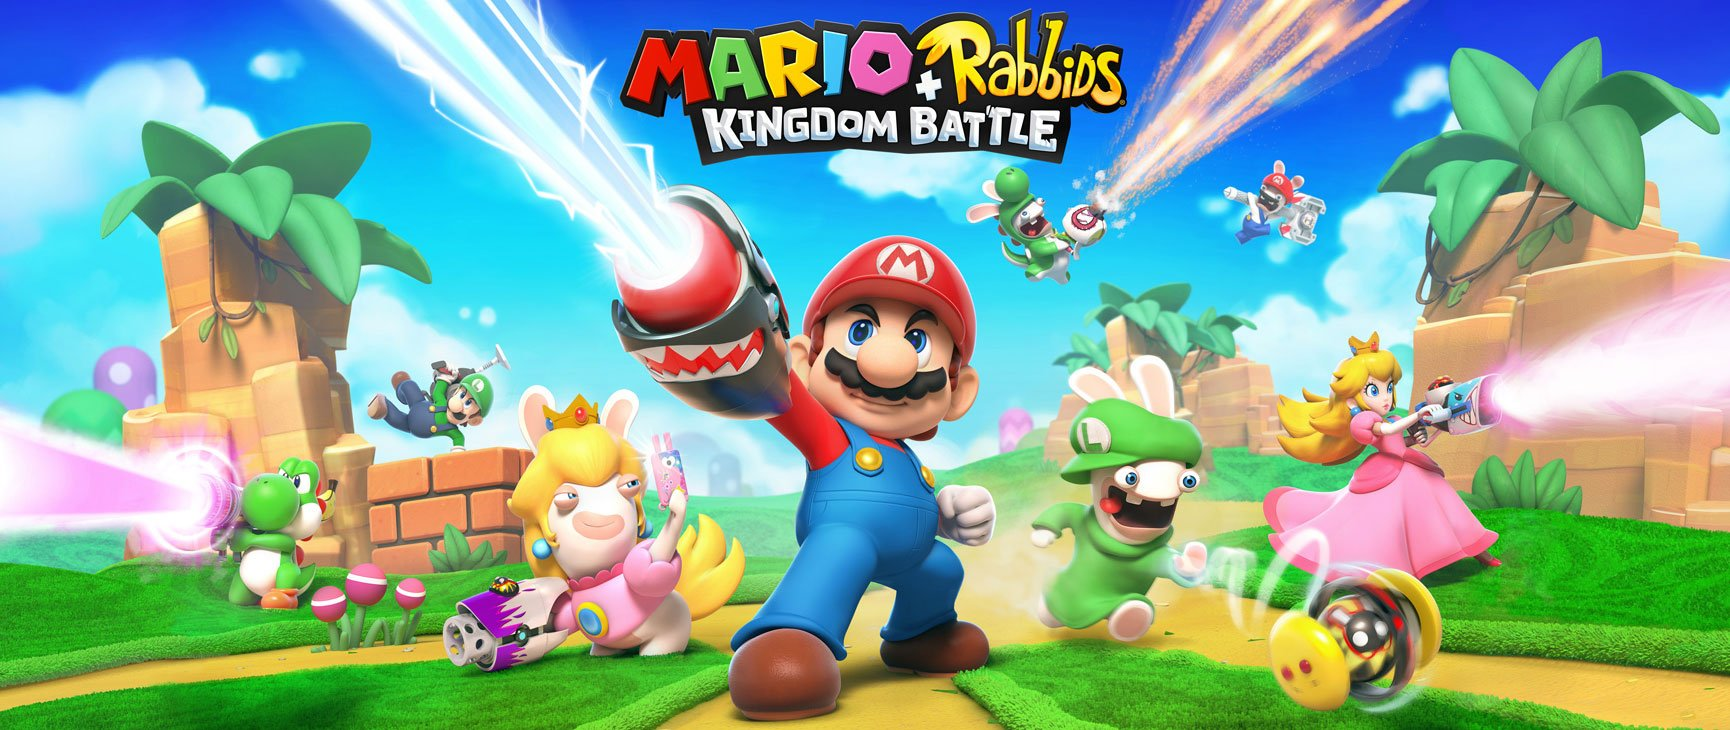 The most surprising team around takes the win! #MarioRabbids is #TheGameAwards Best Strategy Game! https://t.co/fI5cpuGU5Z